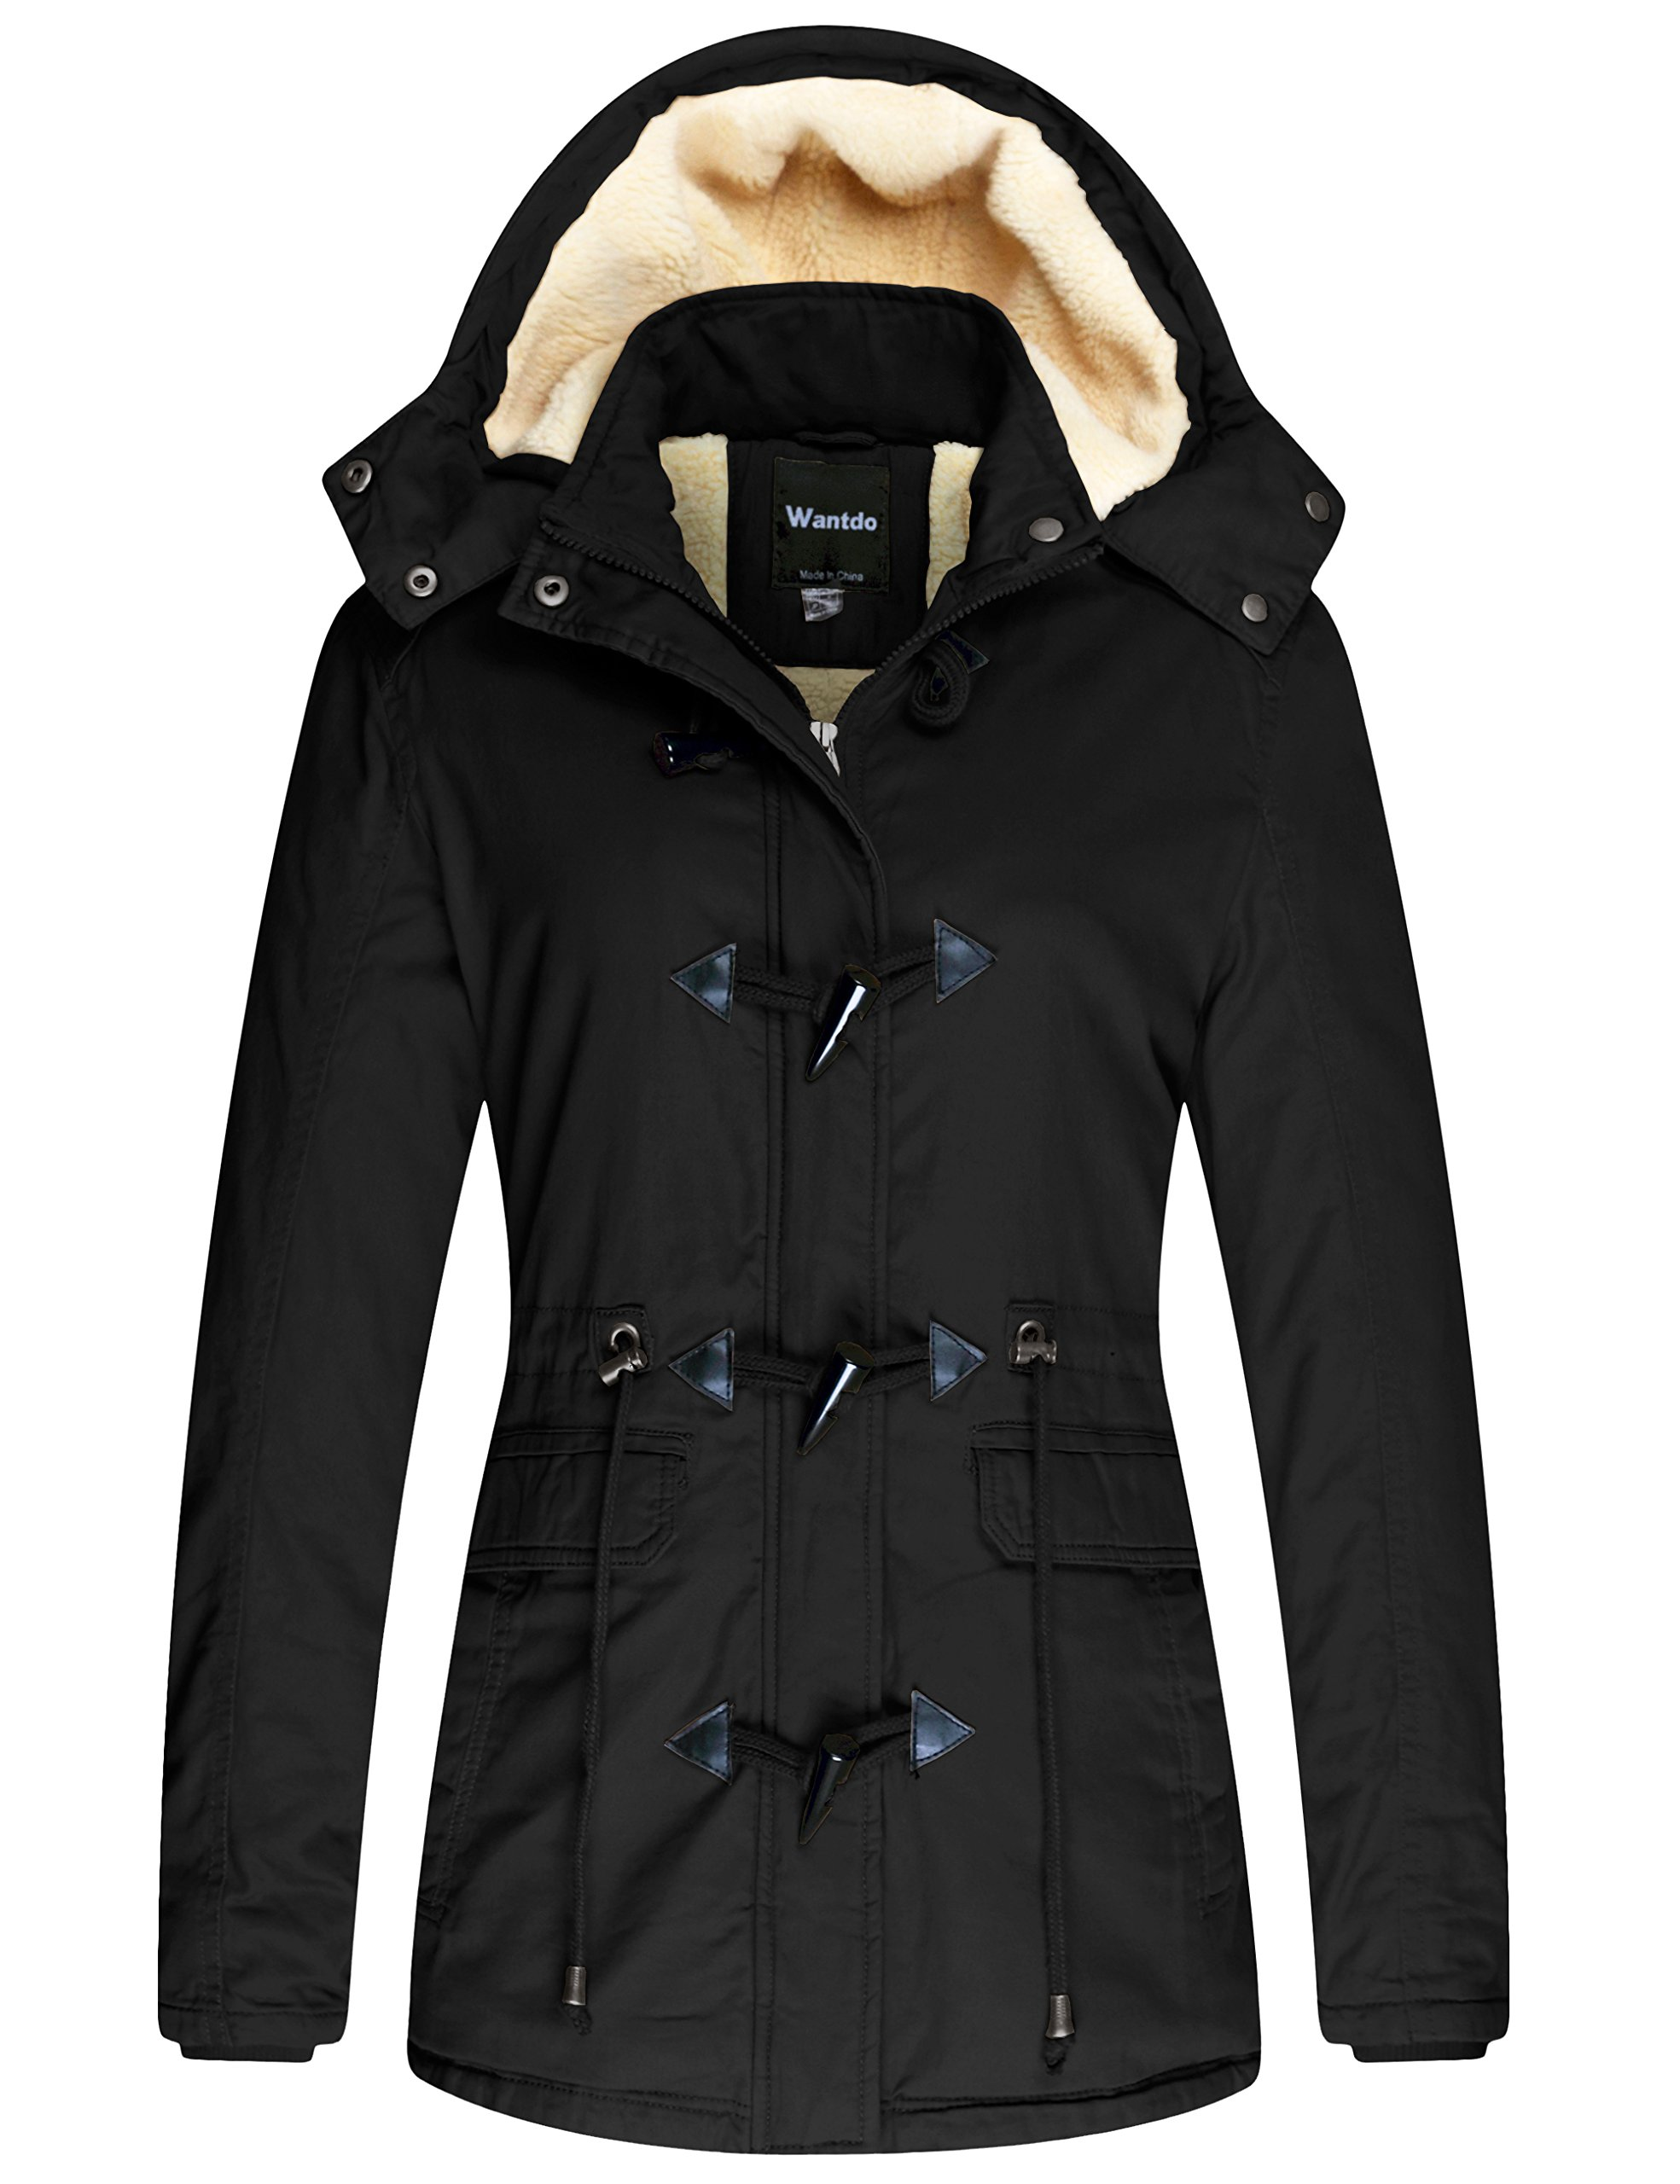 Wantdo Women's Winter Thicken Jacket Cotton Coat with Removable Hood (Black, US M) by Wantdo (Image #1)